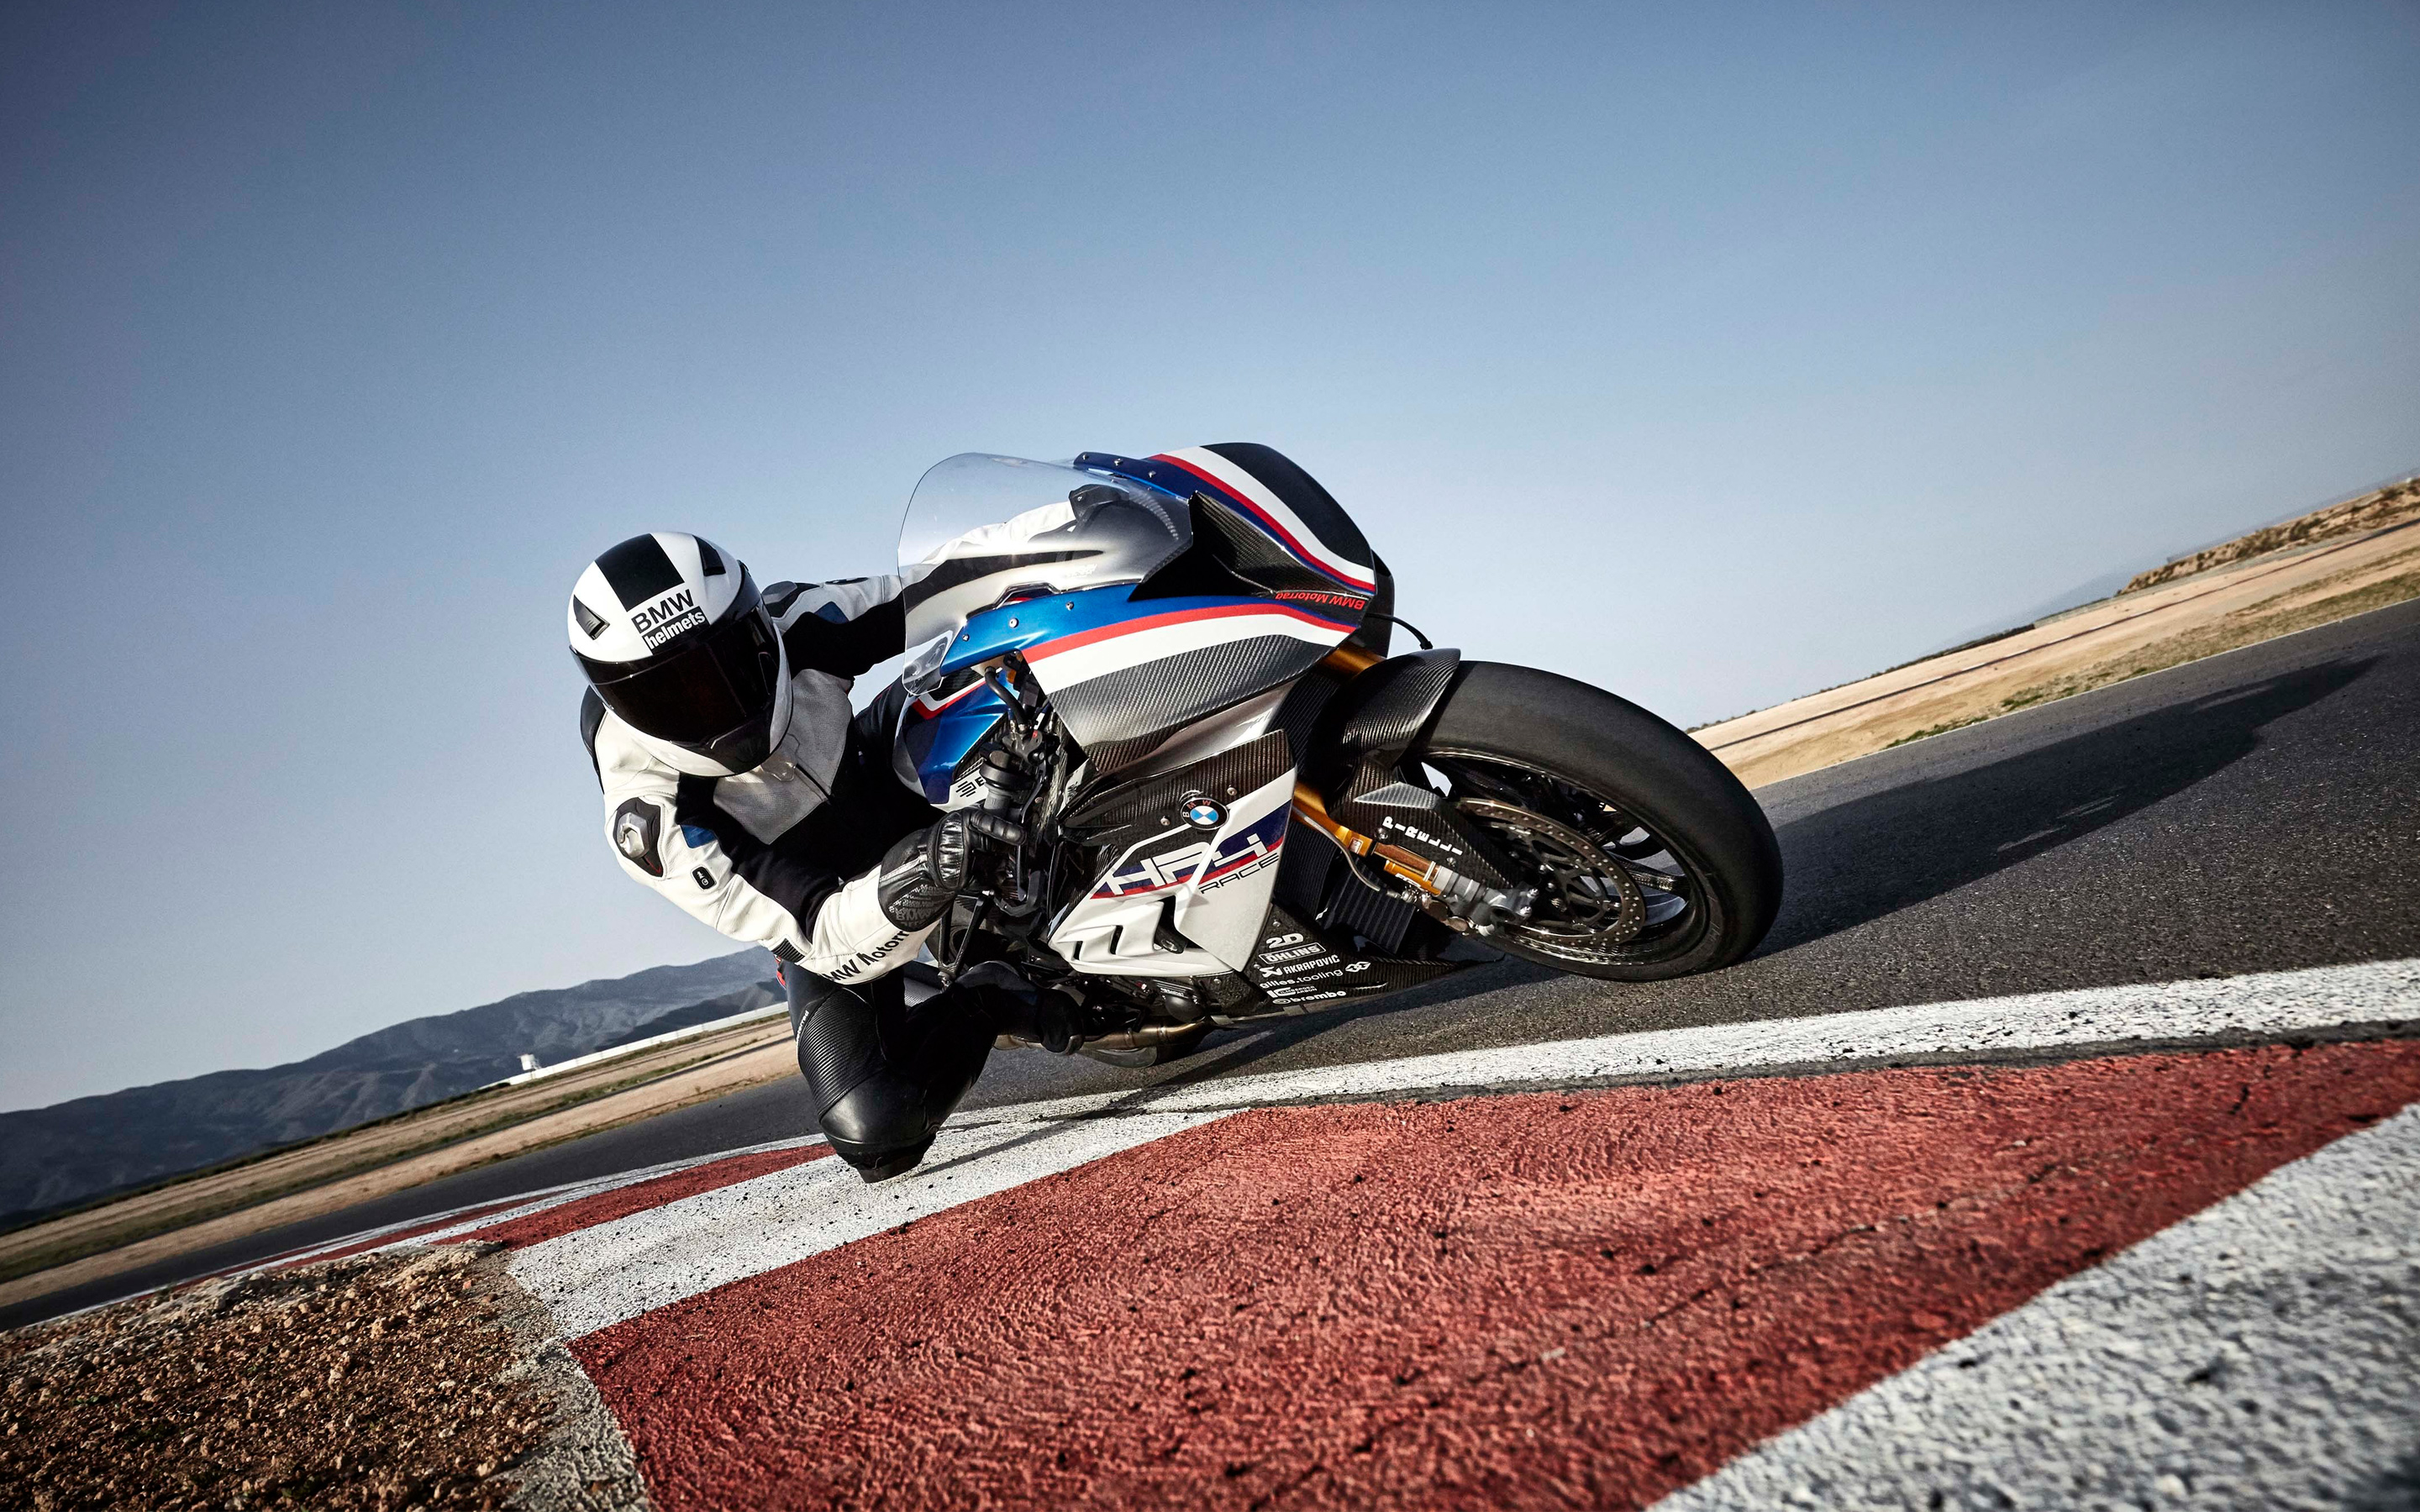 BMW HP4 Blue Widescreen Desktop Wallpaper 1007 2880x1800 px 2880x1800